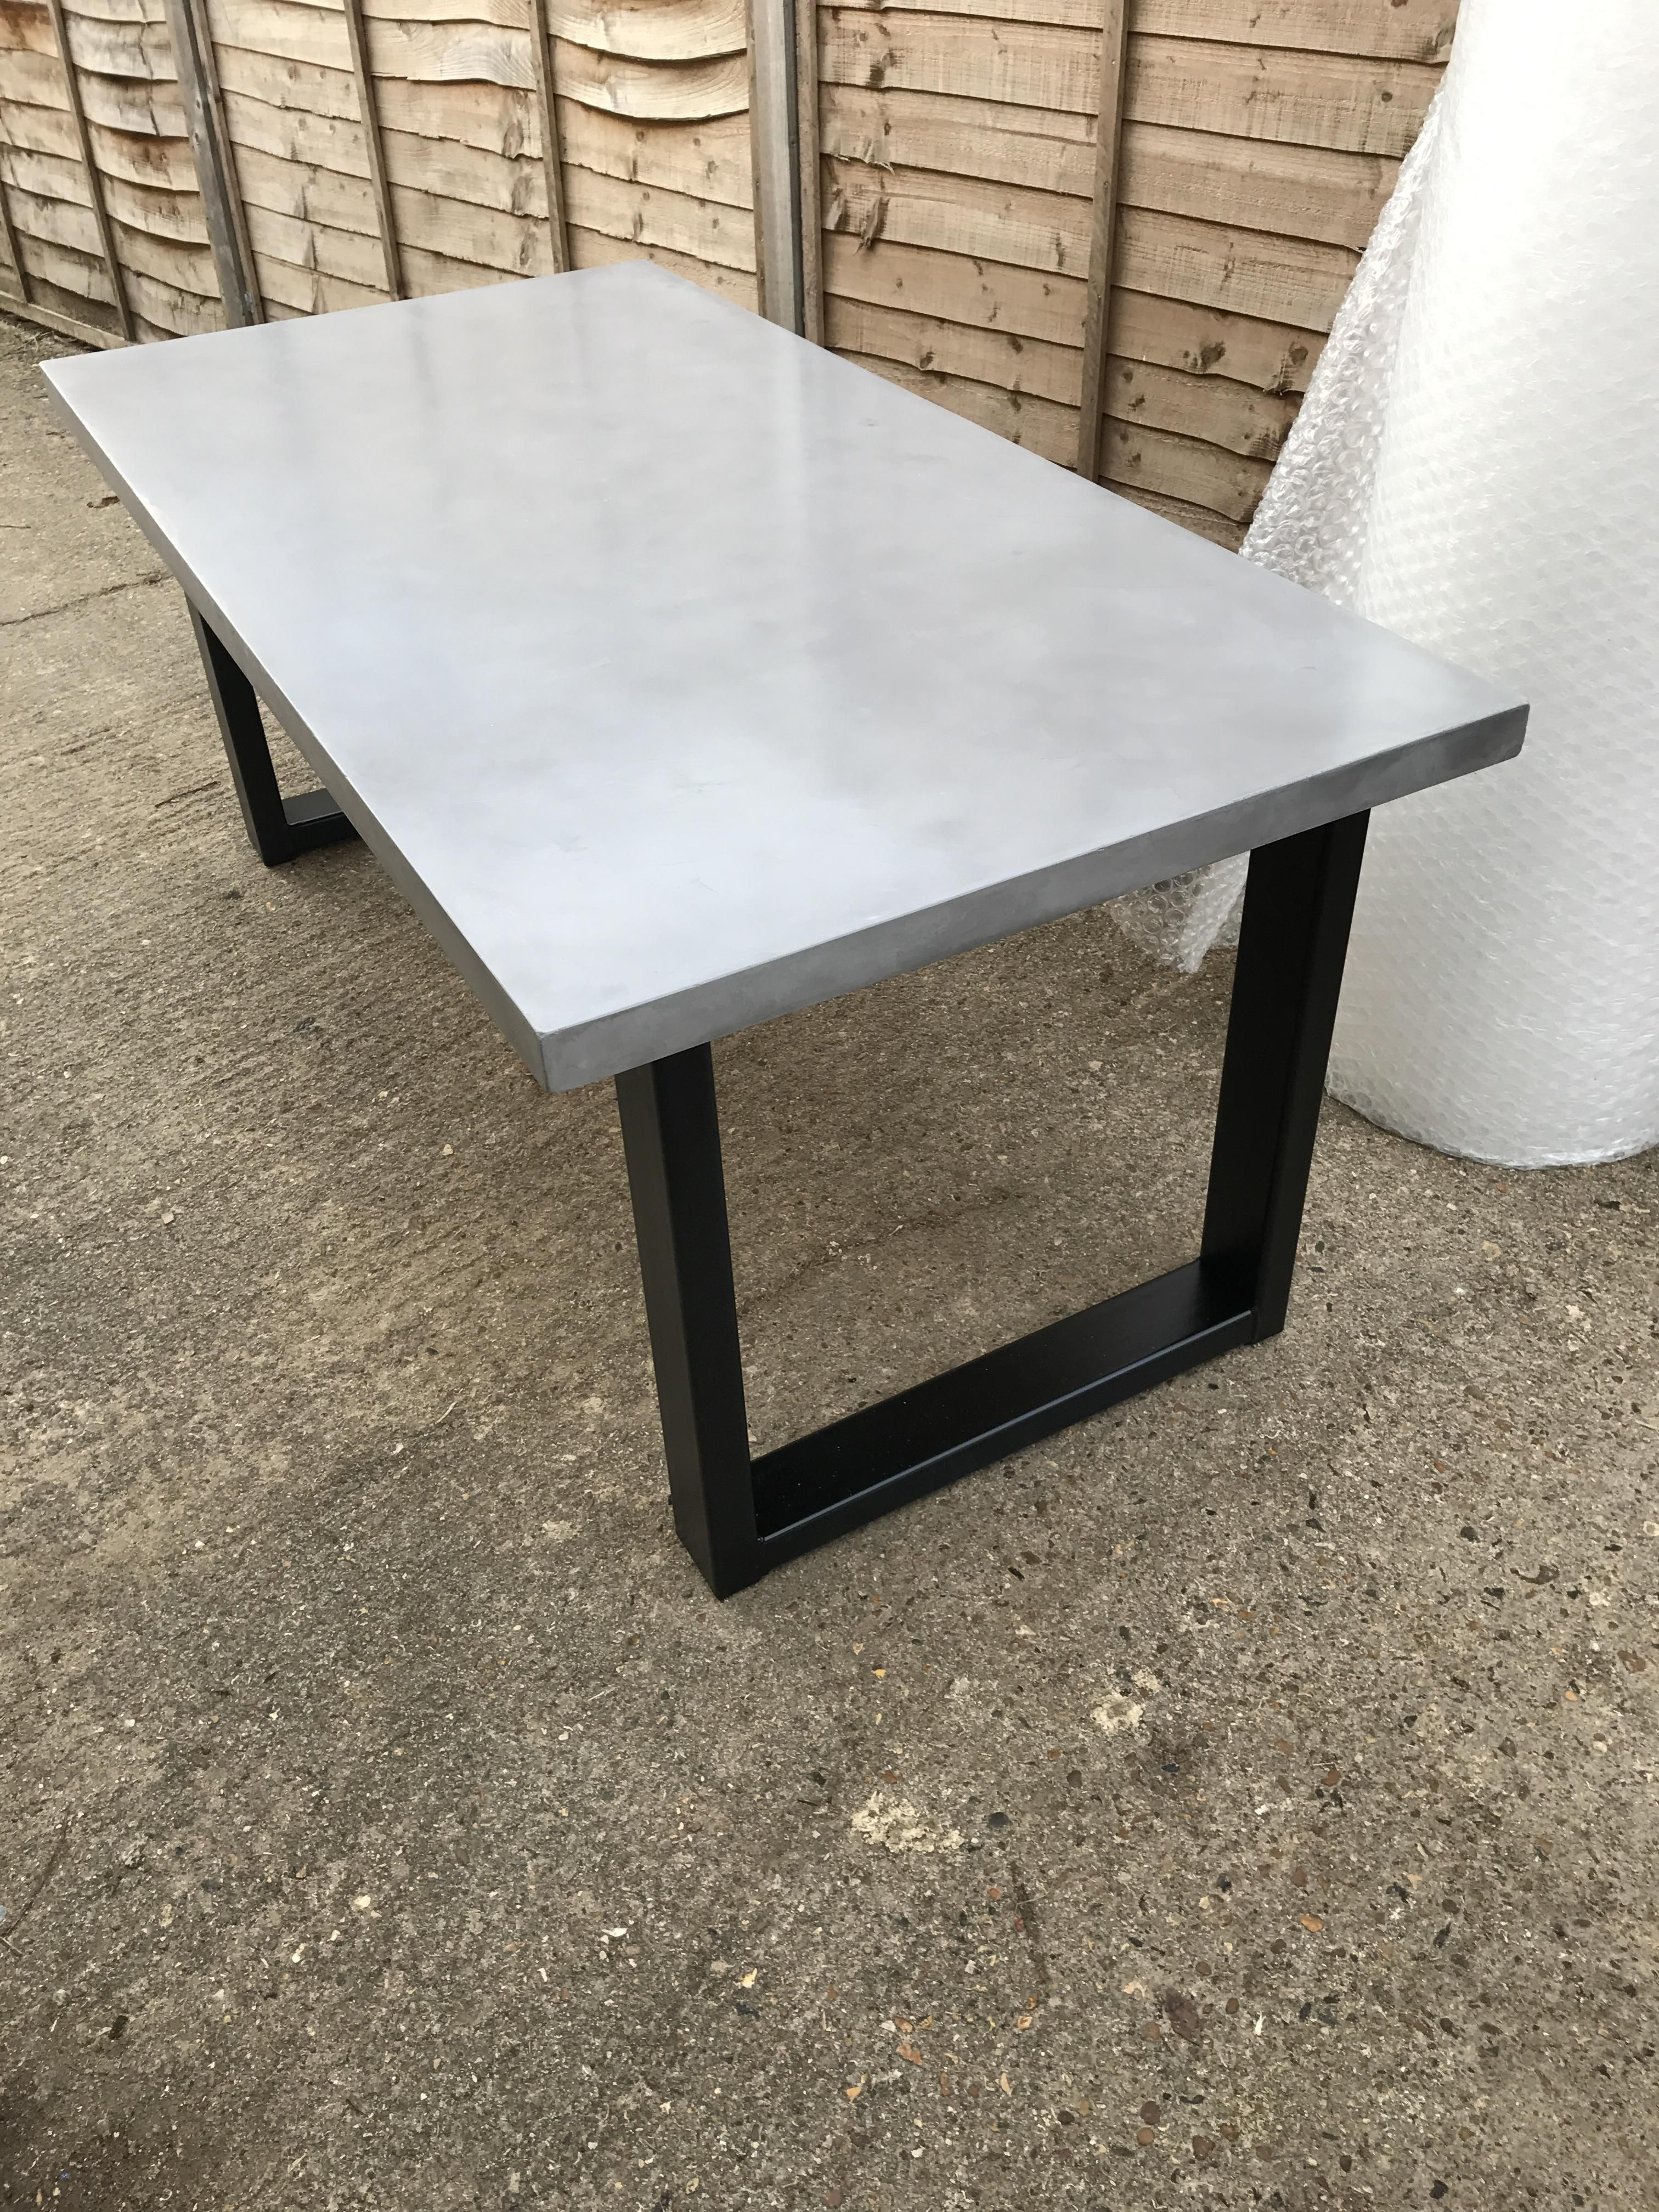 Chunky Polished Concrete Dining Table Stone Dining Table Concrete Dining Table Dining Table #stone #living #room #tables